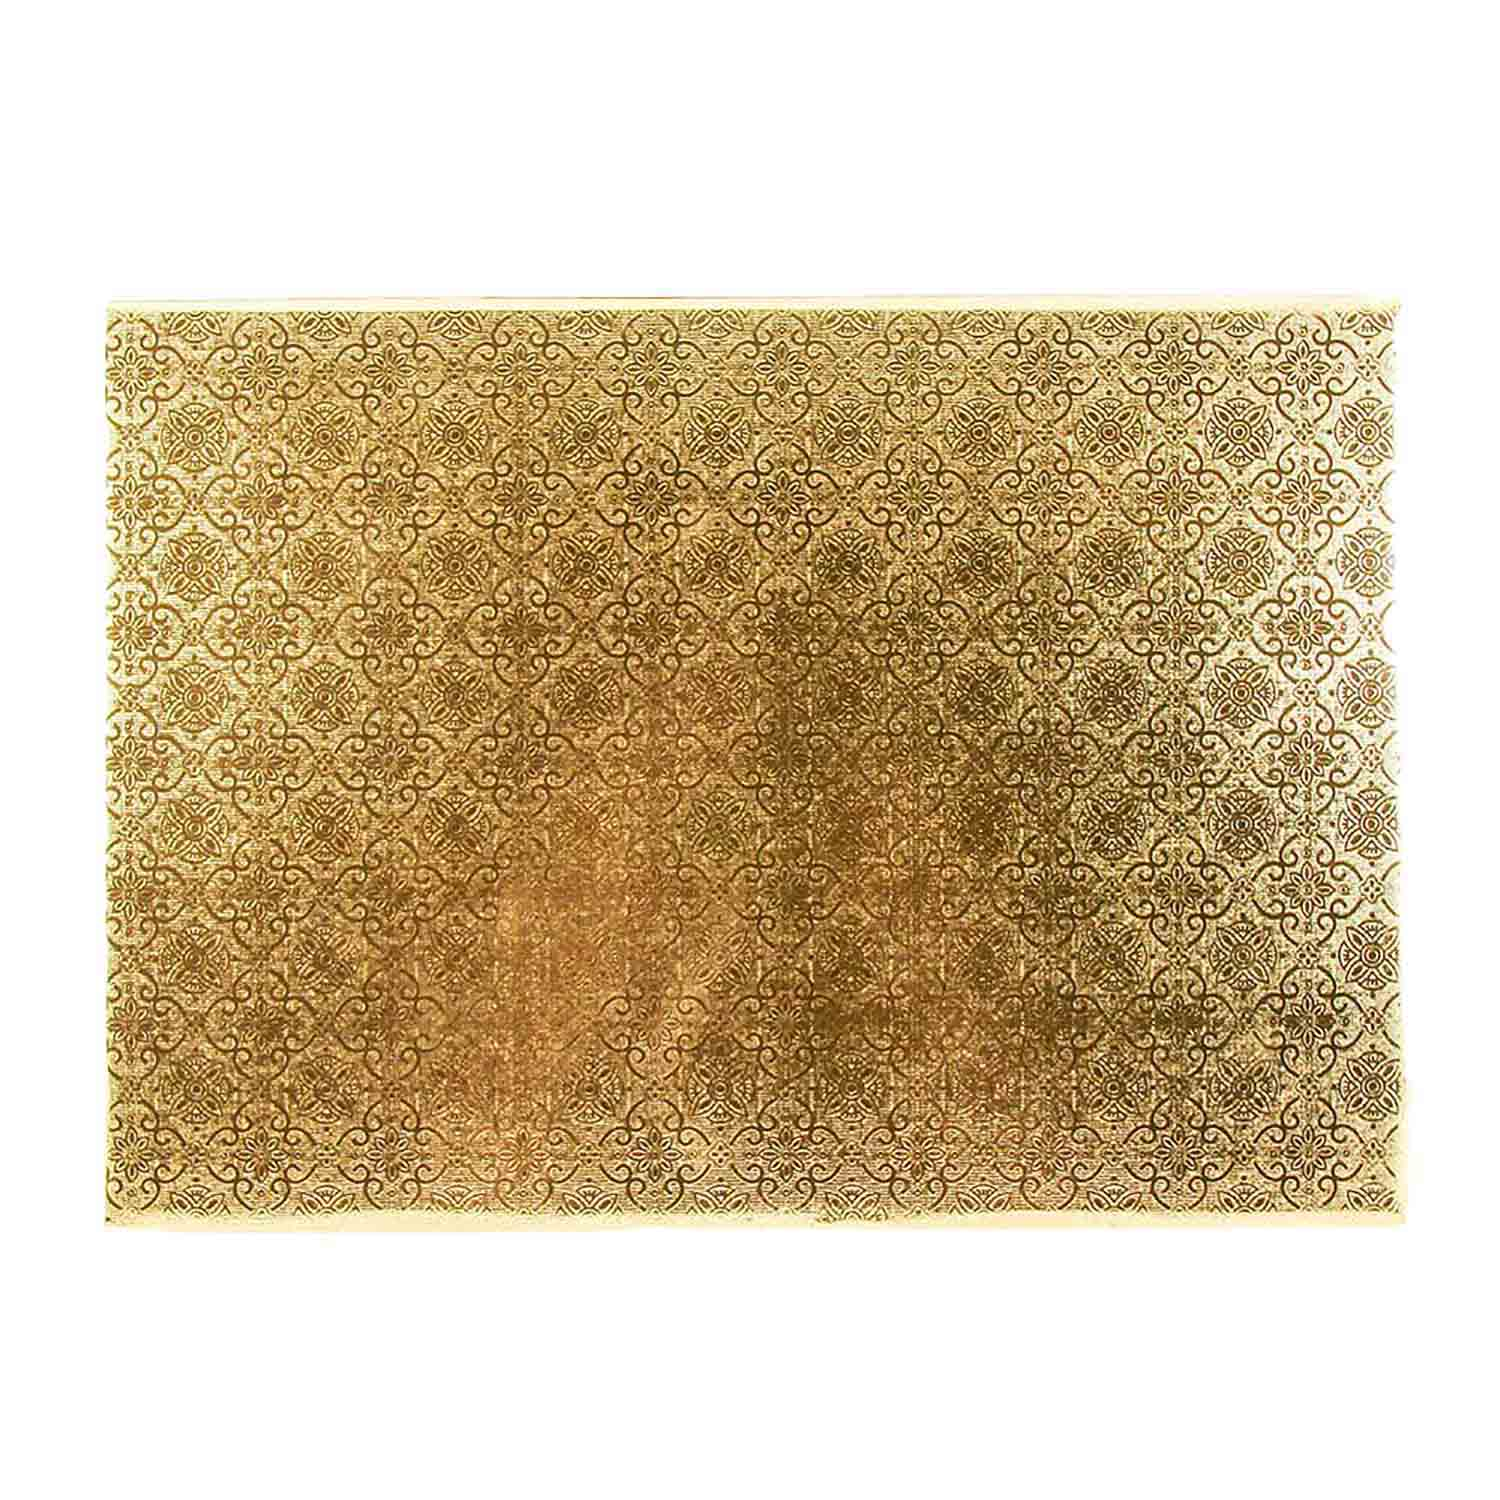 "10"" x 14"" Rectangle Gold Foil Quarter Sheet Cake Drum"